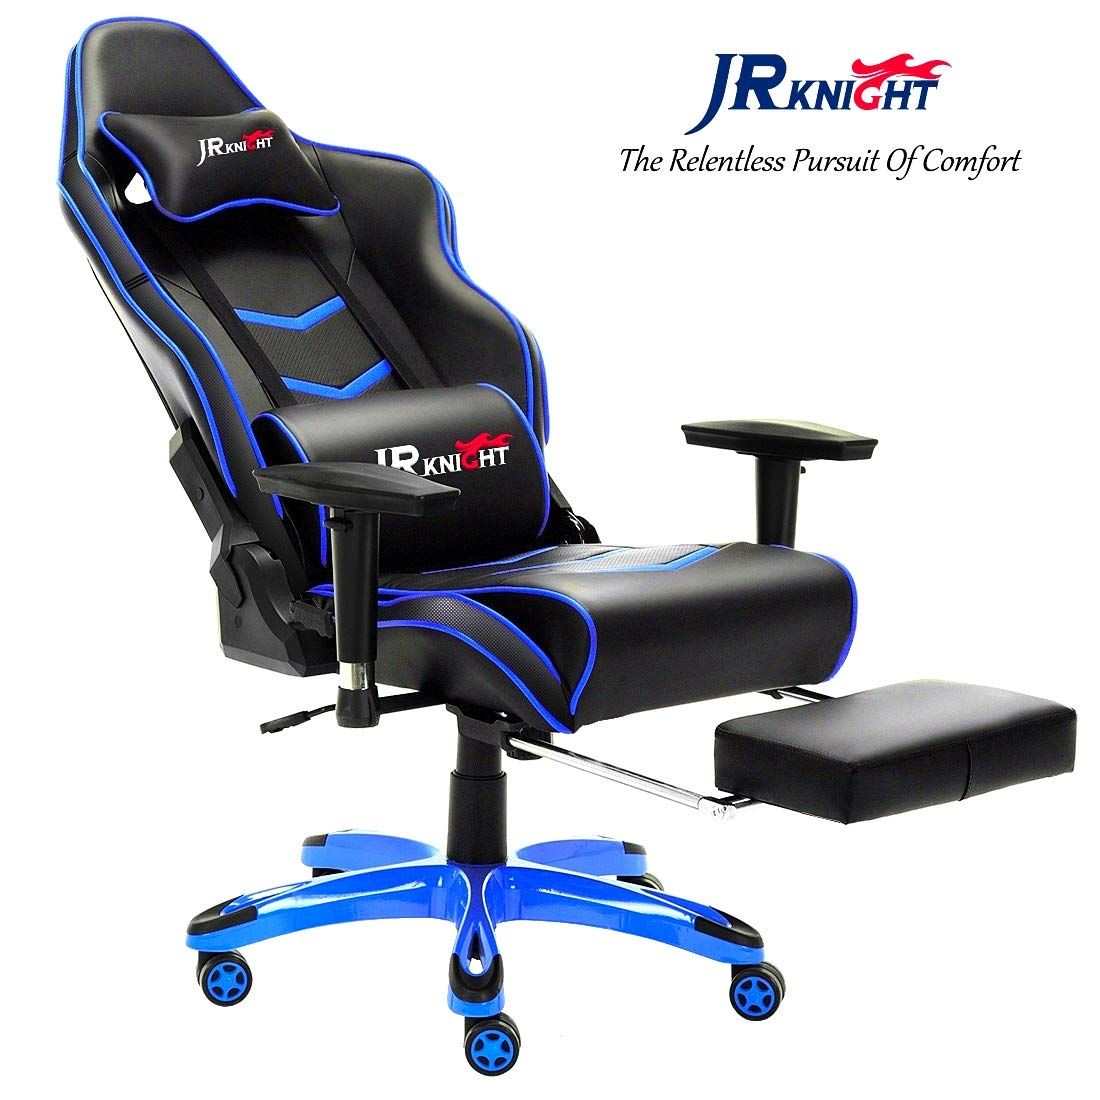 JR Knight Gaming Chair Pro, Ergonomical Luxury Home Office Racing Chair with Lumbar Pillow and Foot Rest Stool, Gamer Design Leather Chair (Black&Blue) JR Knight Furniture